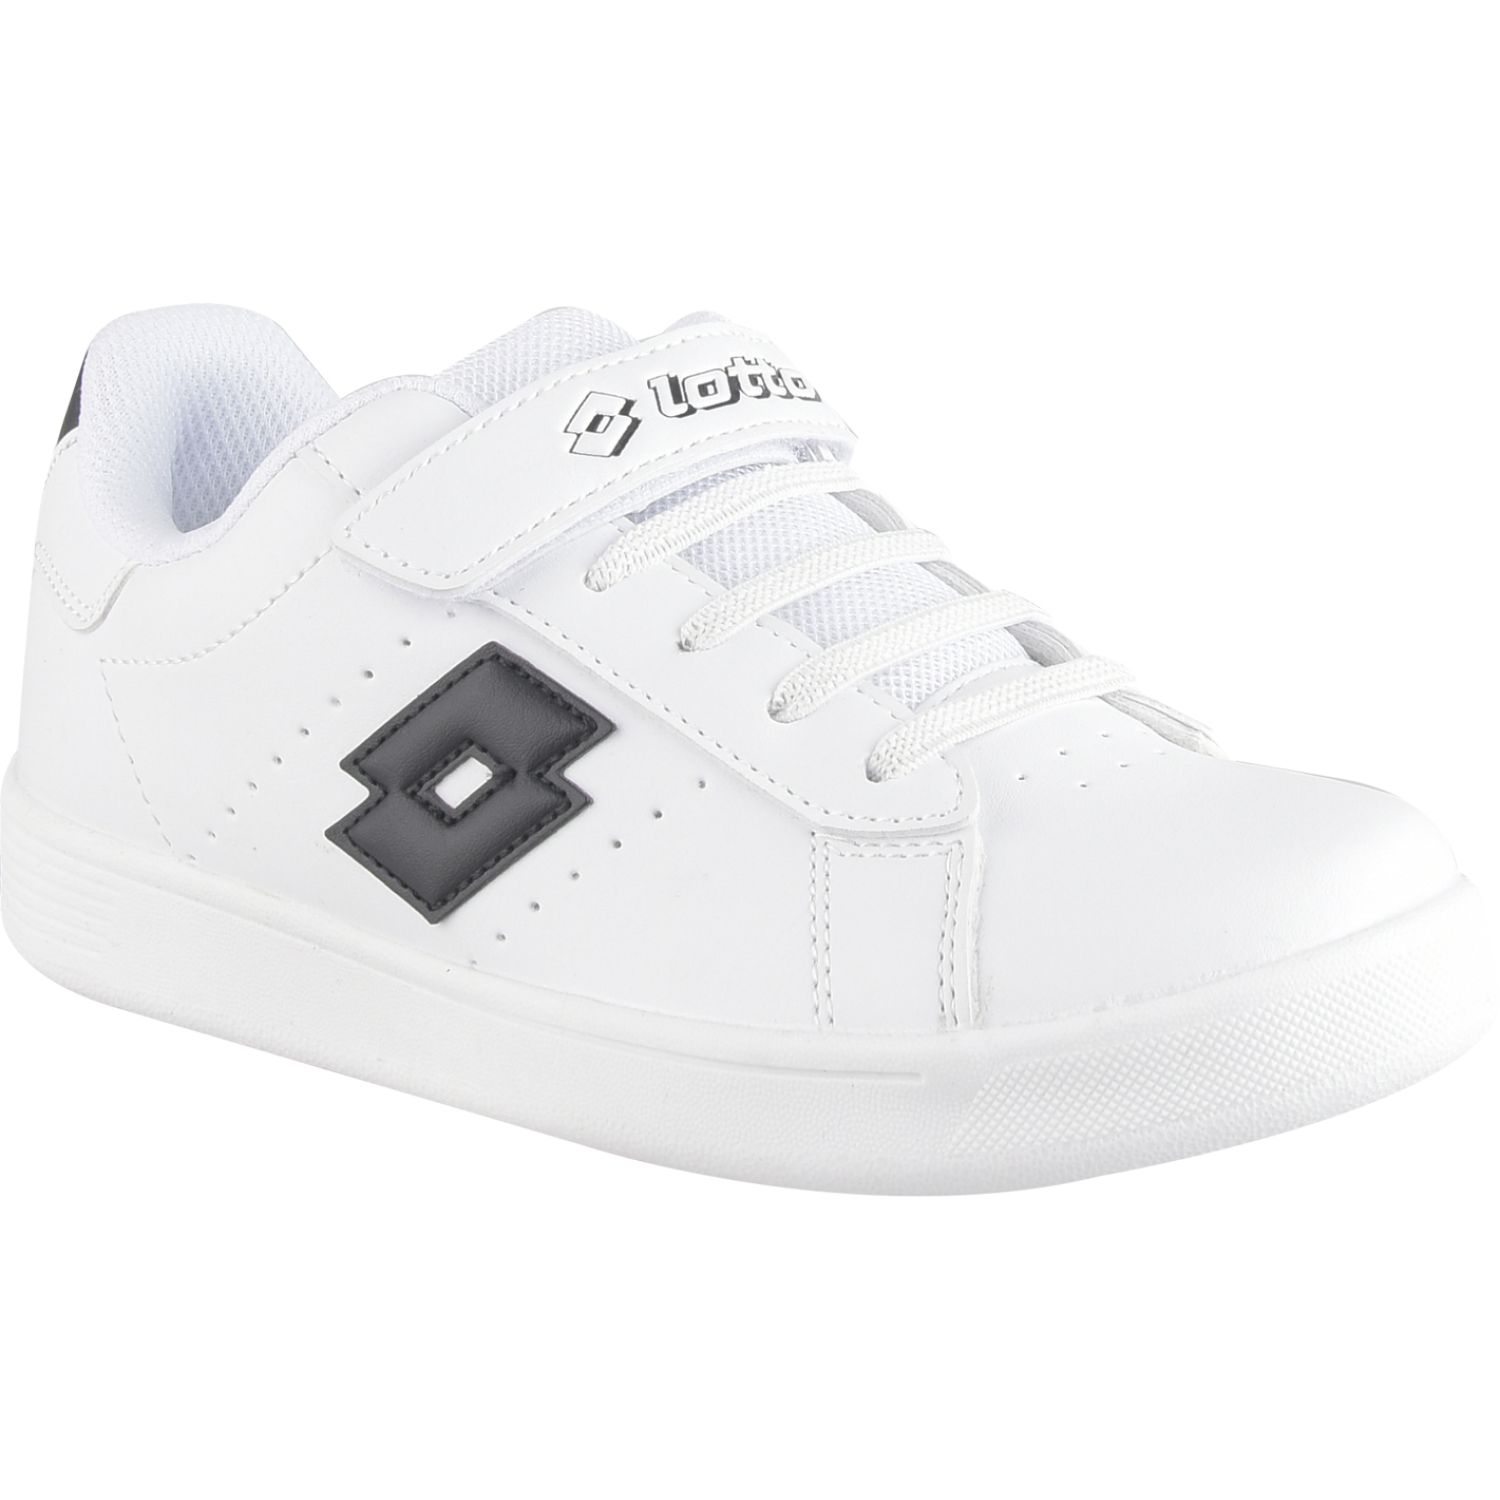 Lotto 1973 evo cl sl Blanco / negro Walking